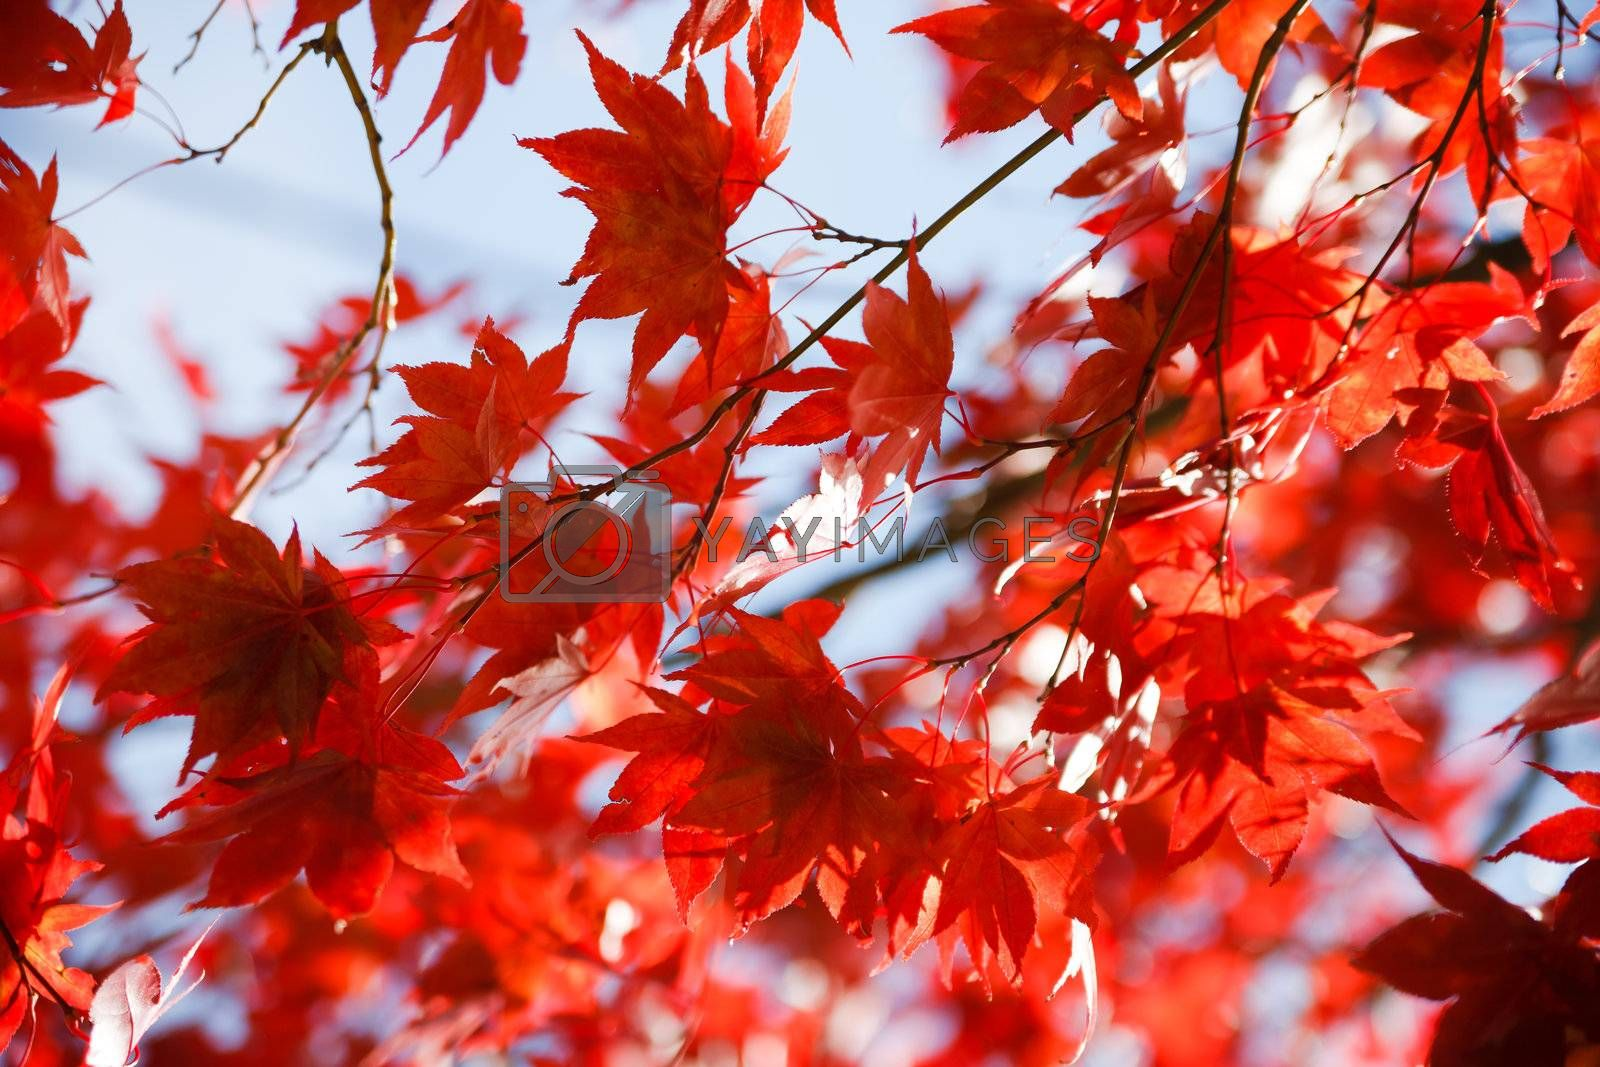 autumnal red leaves against the blue sky